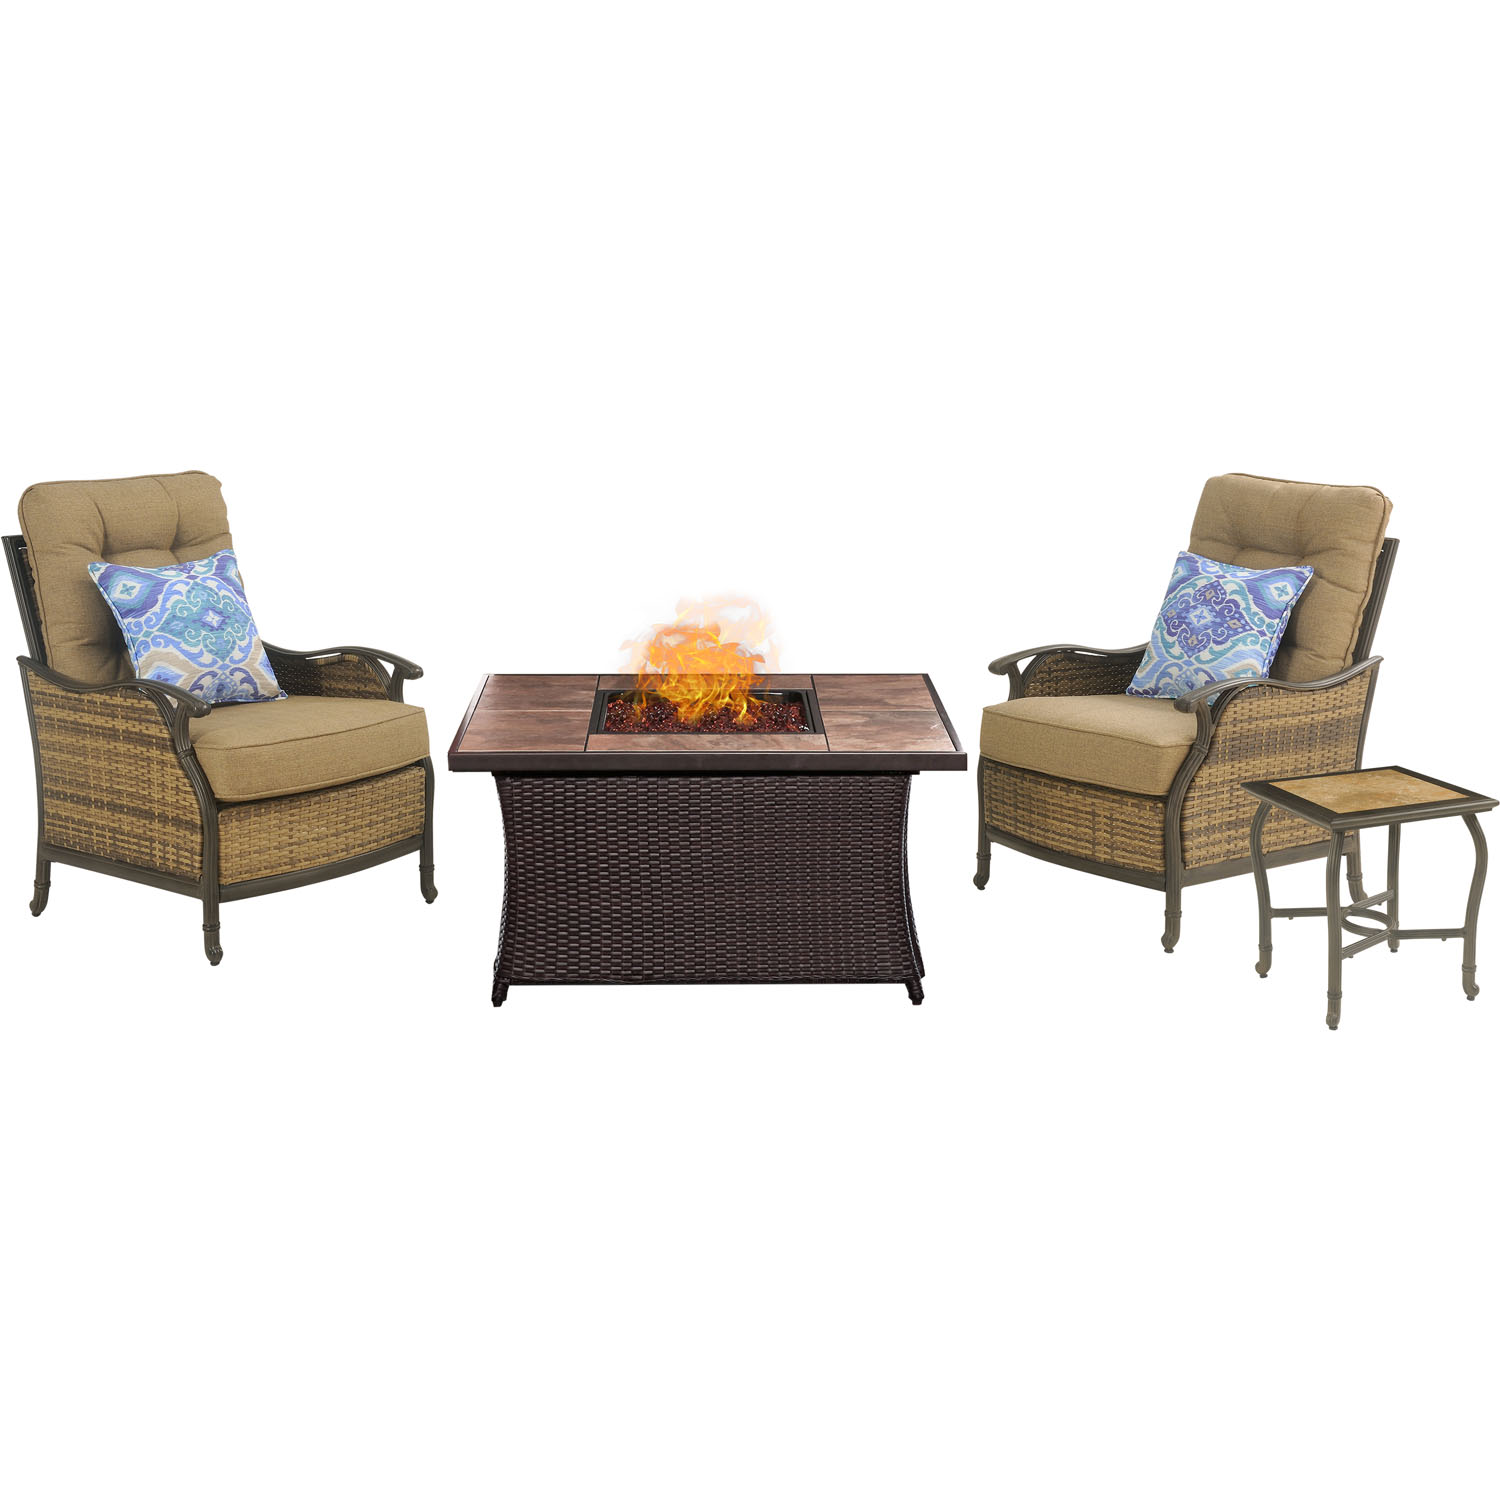 Hanover Hudson Square Fire Pit Chat Set with Faux-Stone Tile Top